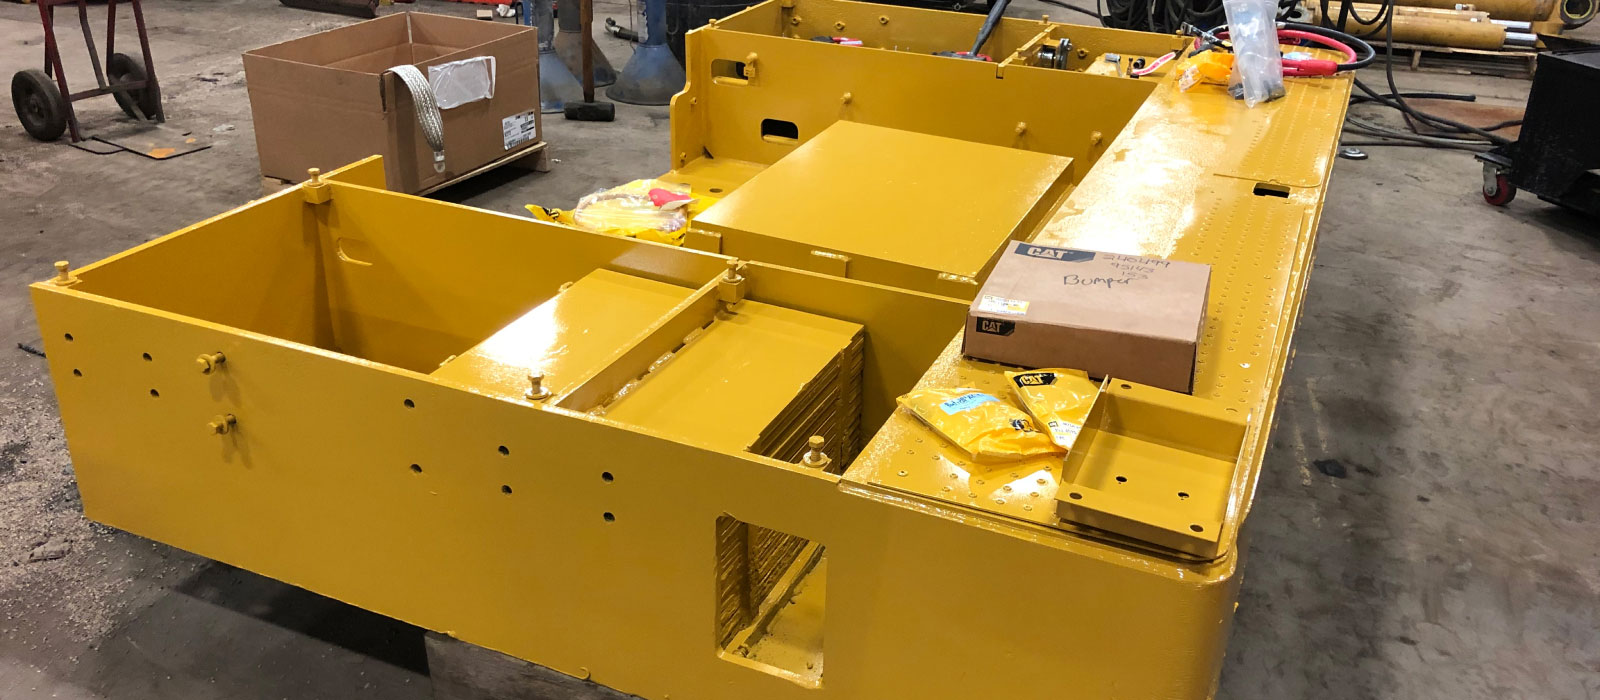 Sections Of The Heavy Machine Such As The Battery Box Are Removed, Inspected And Rebuilt At Bulk Equipment Corp.